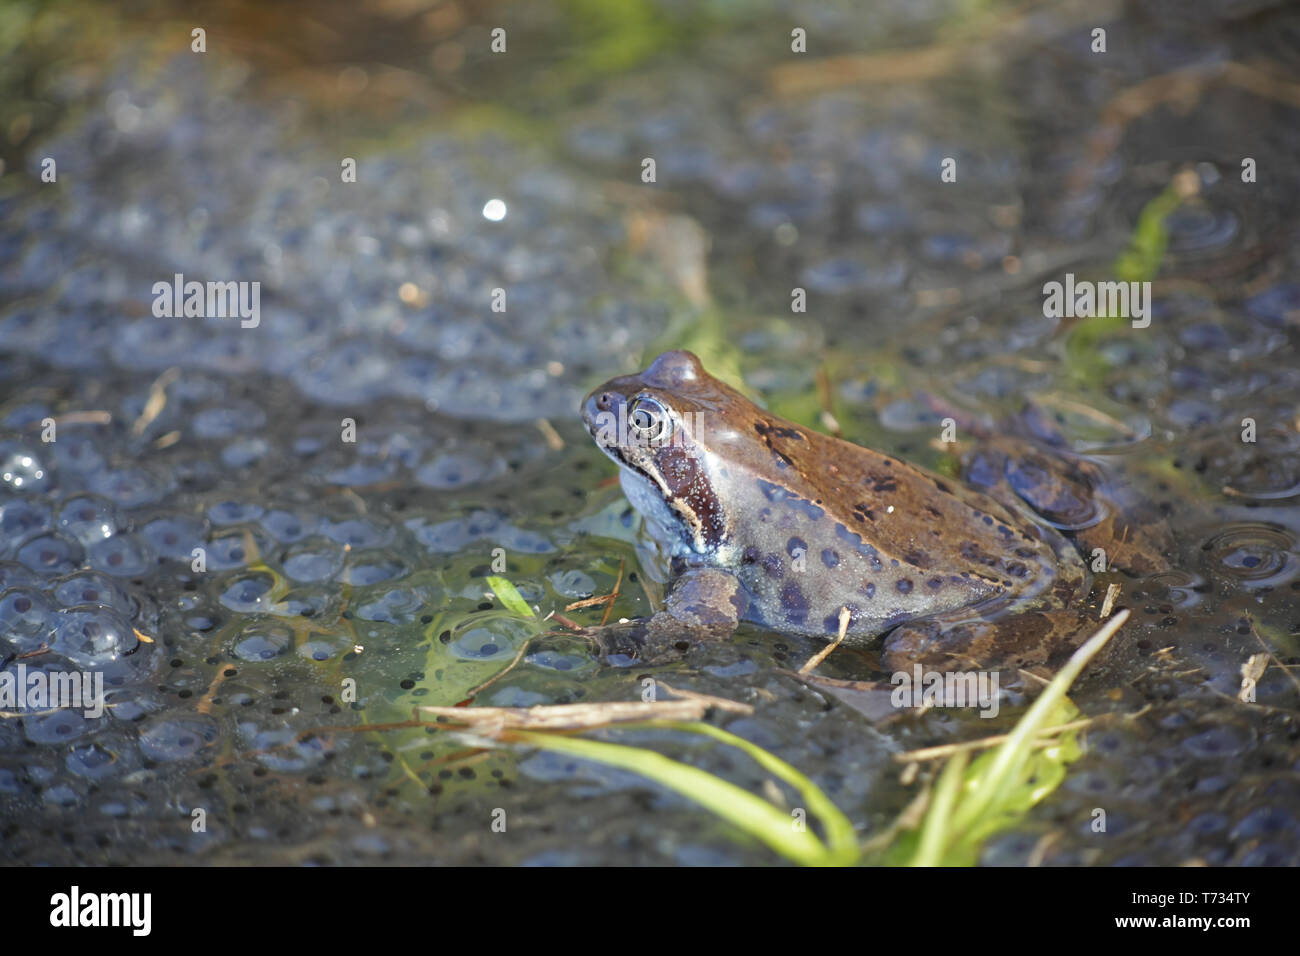 Common frog, Rana temporaria, also known as the European common frog, European common brown frog and European grass frog, on a pond filled with spawn - Stock Image